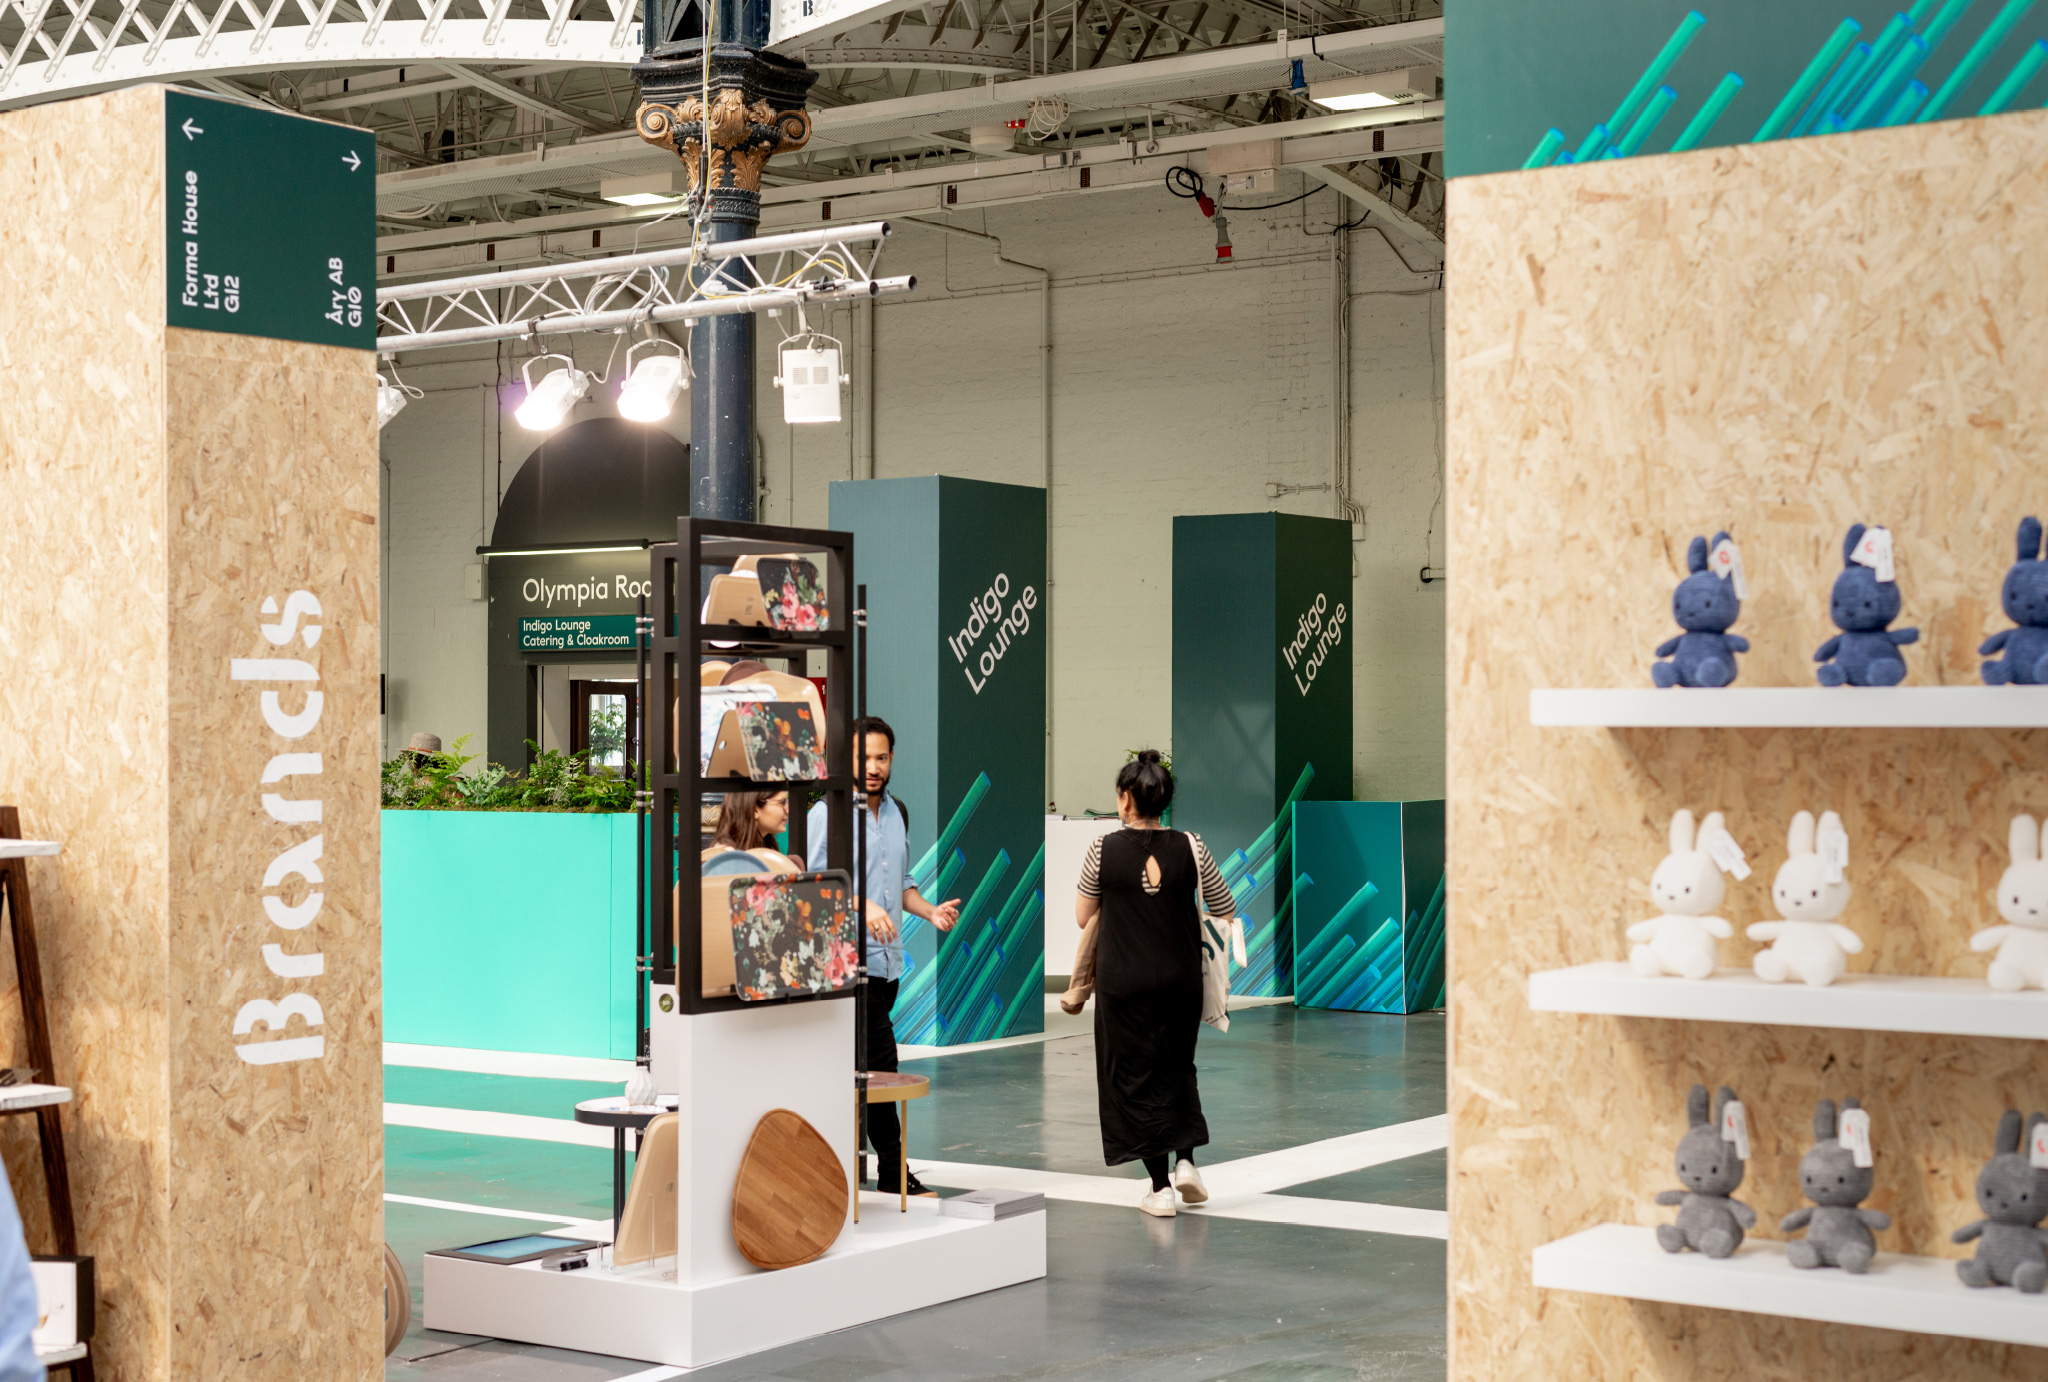 show design of the exhibition